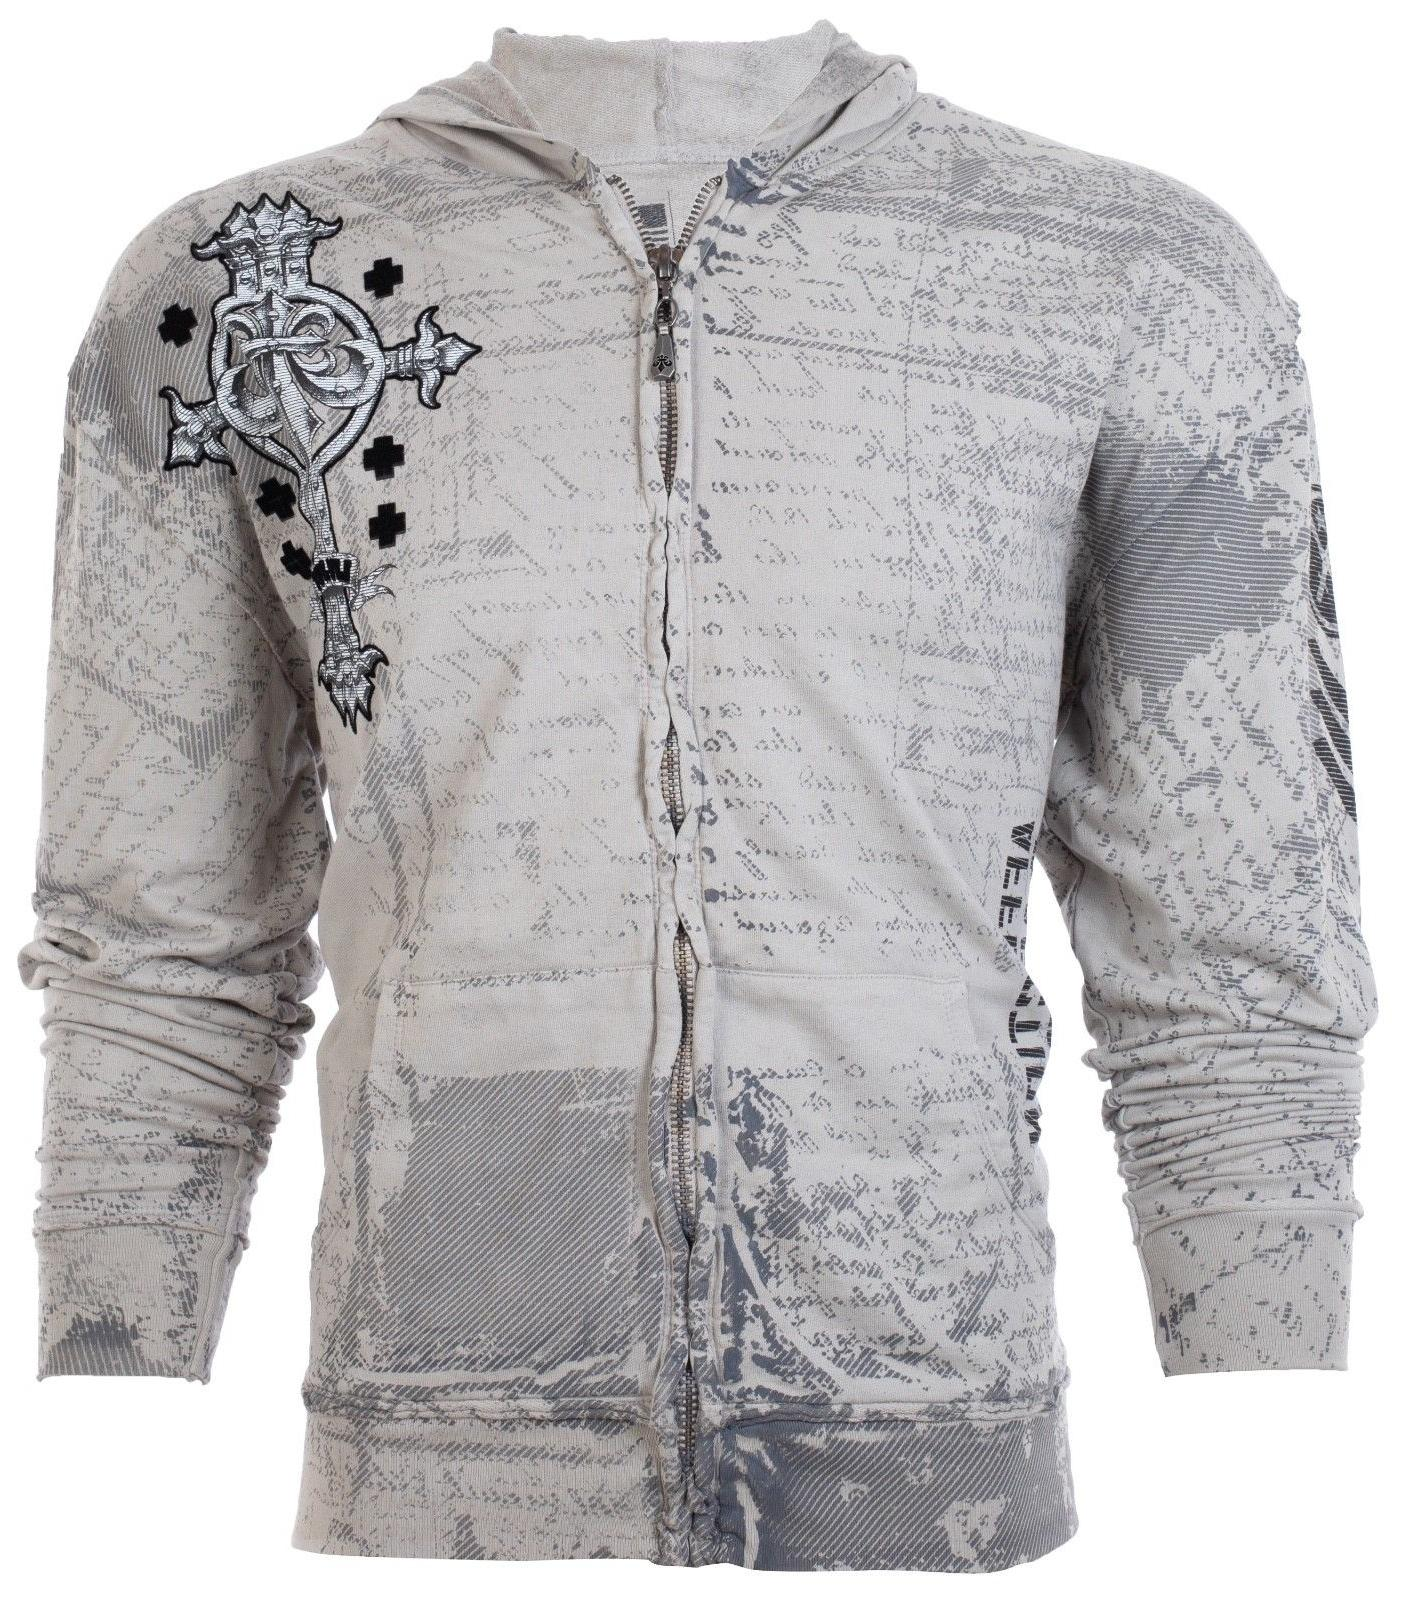 AFFLICTION HOODIE Sweat Shirt ZIP UP Jacket UFC